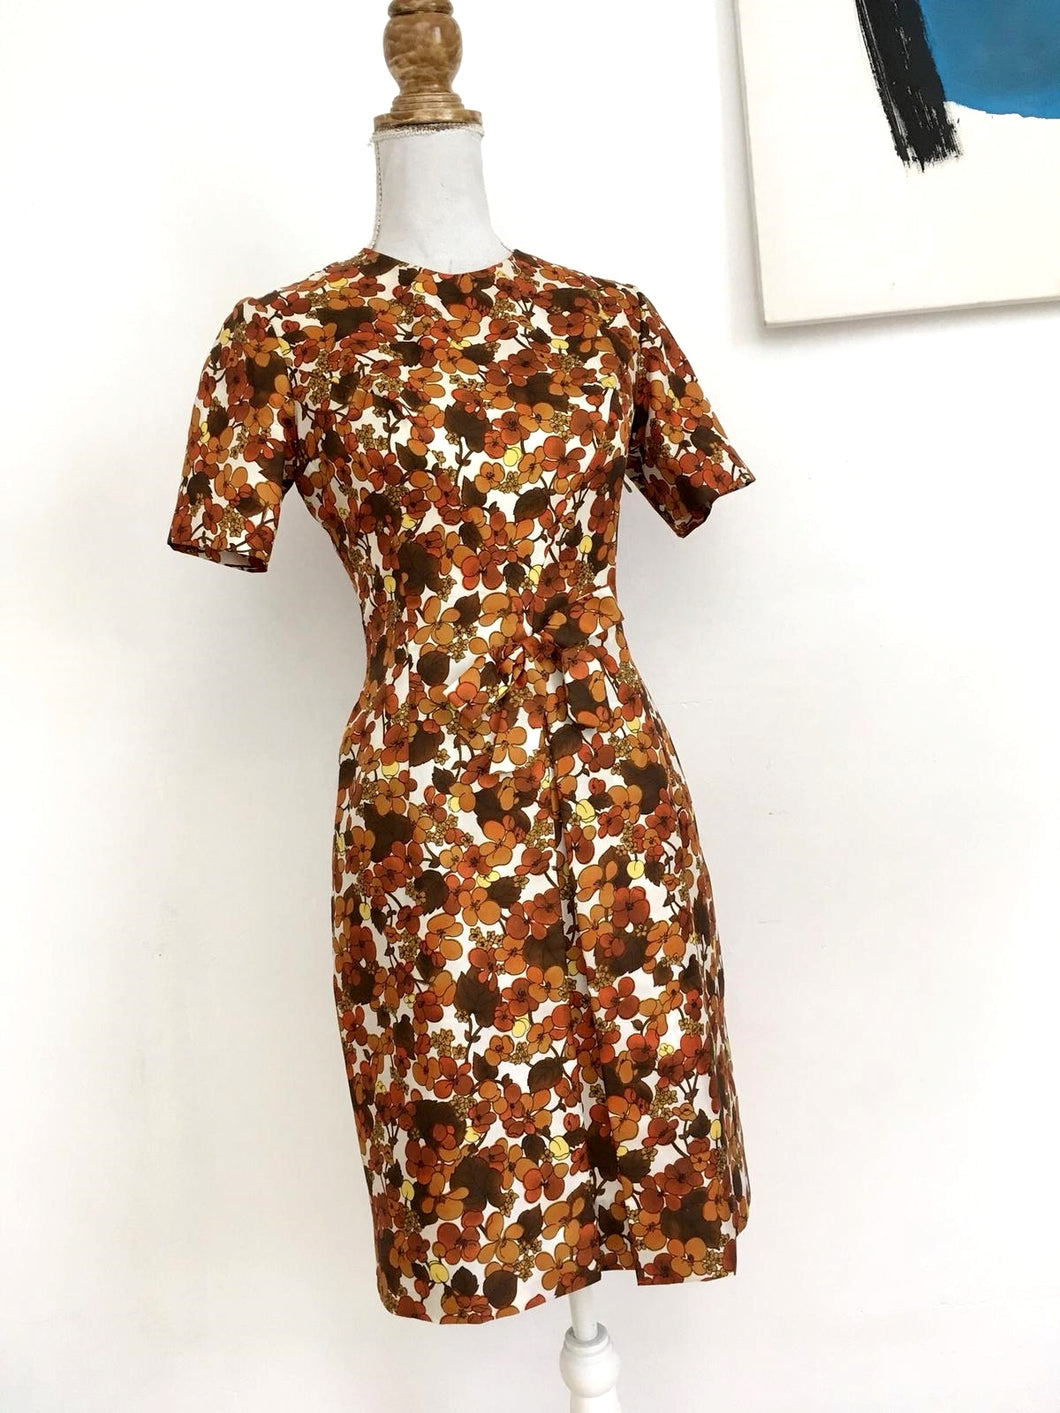 1960s - Stunning Autumn Satin Wiggle Dress - W28 (72cm)